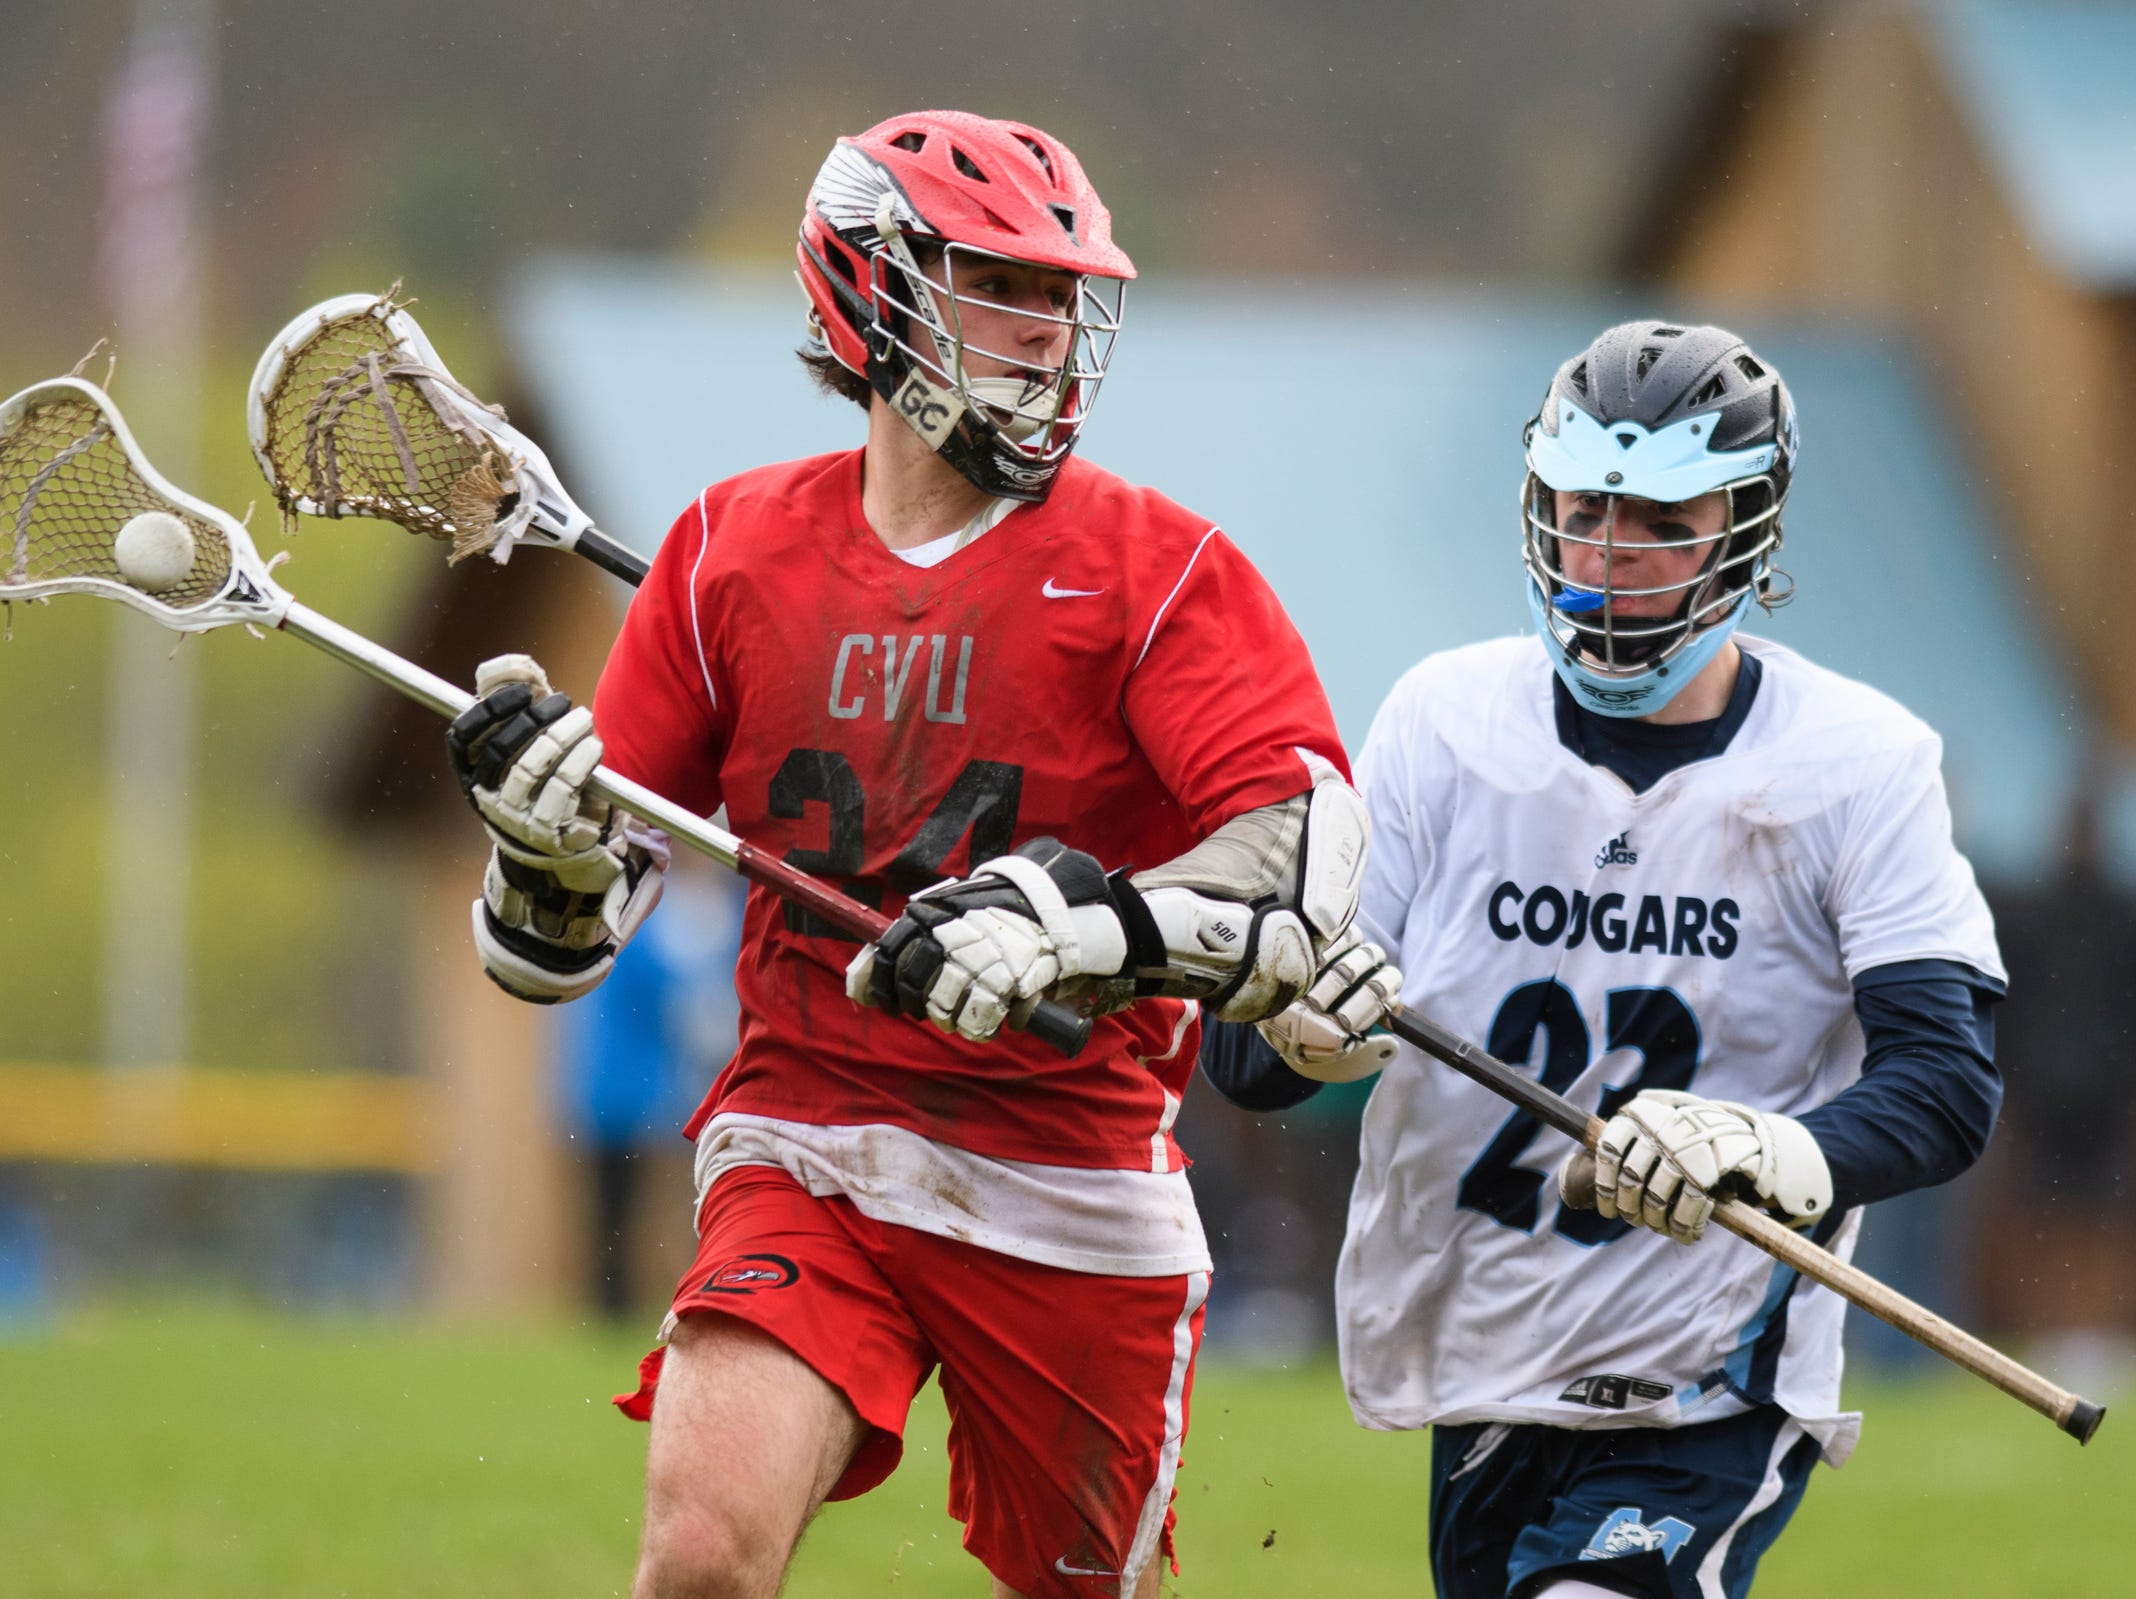 CVU's Nate Cuttitta (24) runs past MMU's Matt Reinfurt (23) during the boys lacrosse game between the Champlain Valley Union Redhawks and the Mount Mansfield Cougars at MMU High School on Tuesday afternoon May 14, 2019 in Jericho, Vermont.